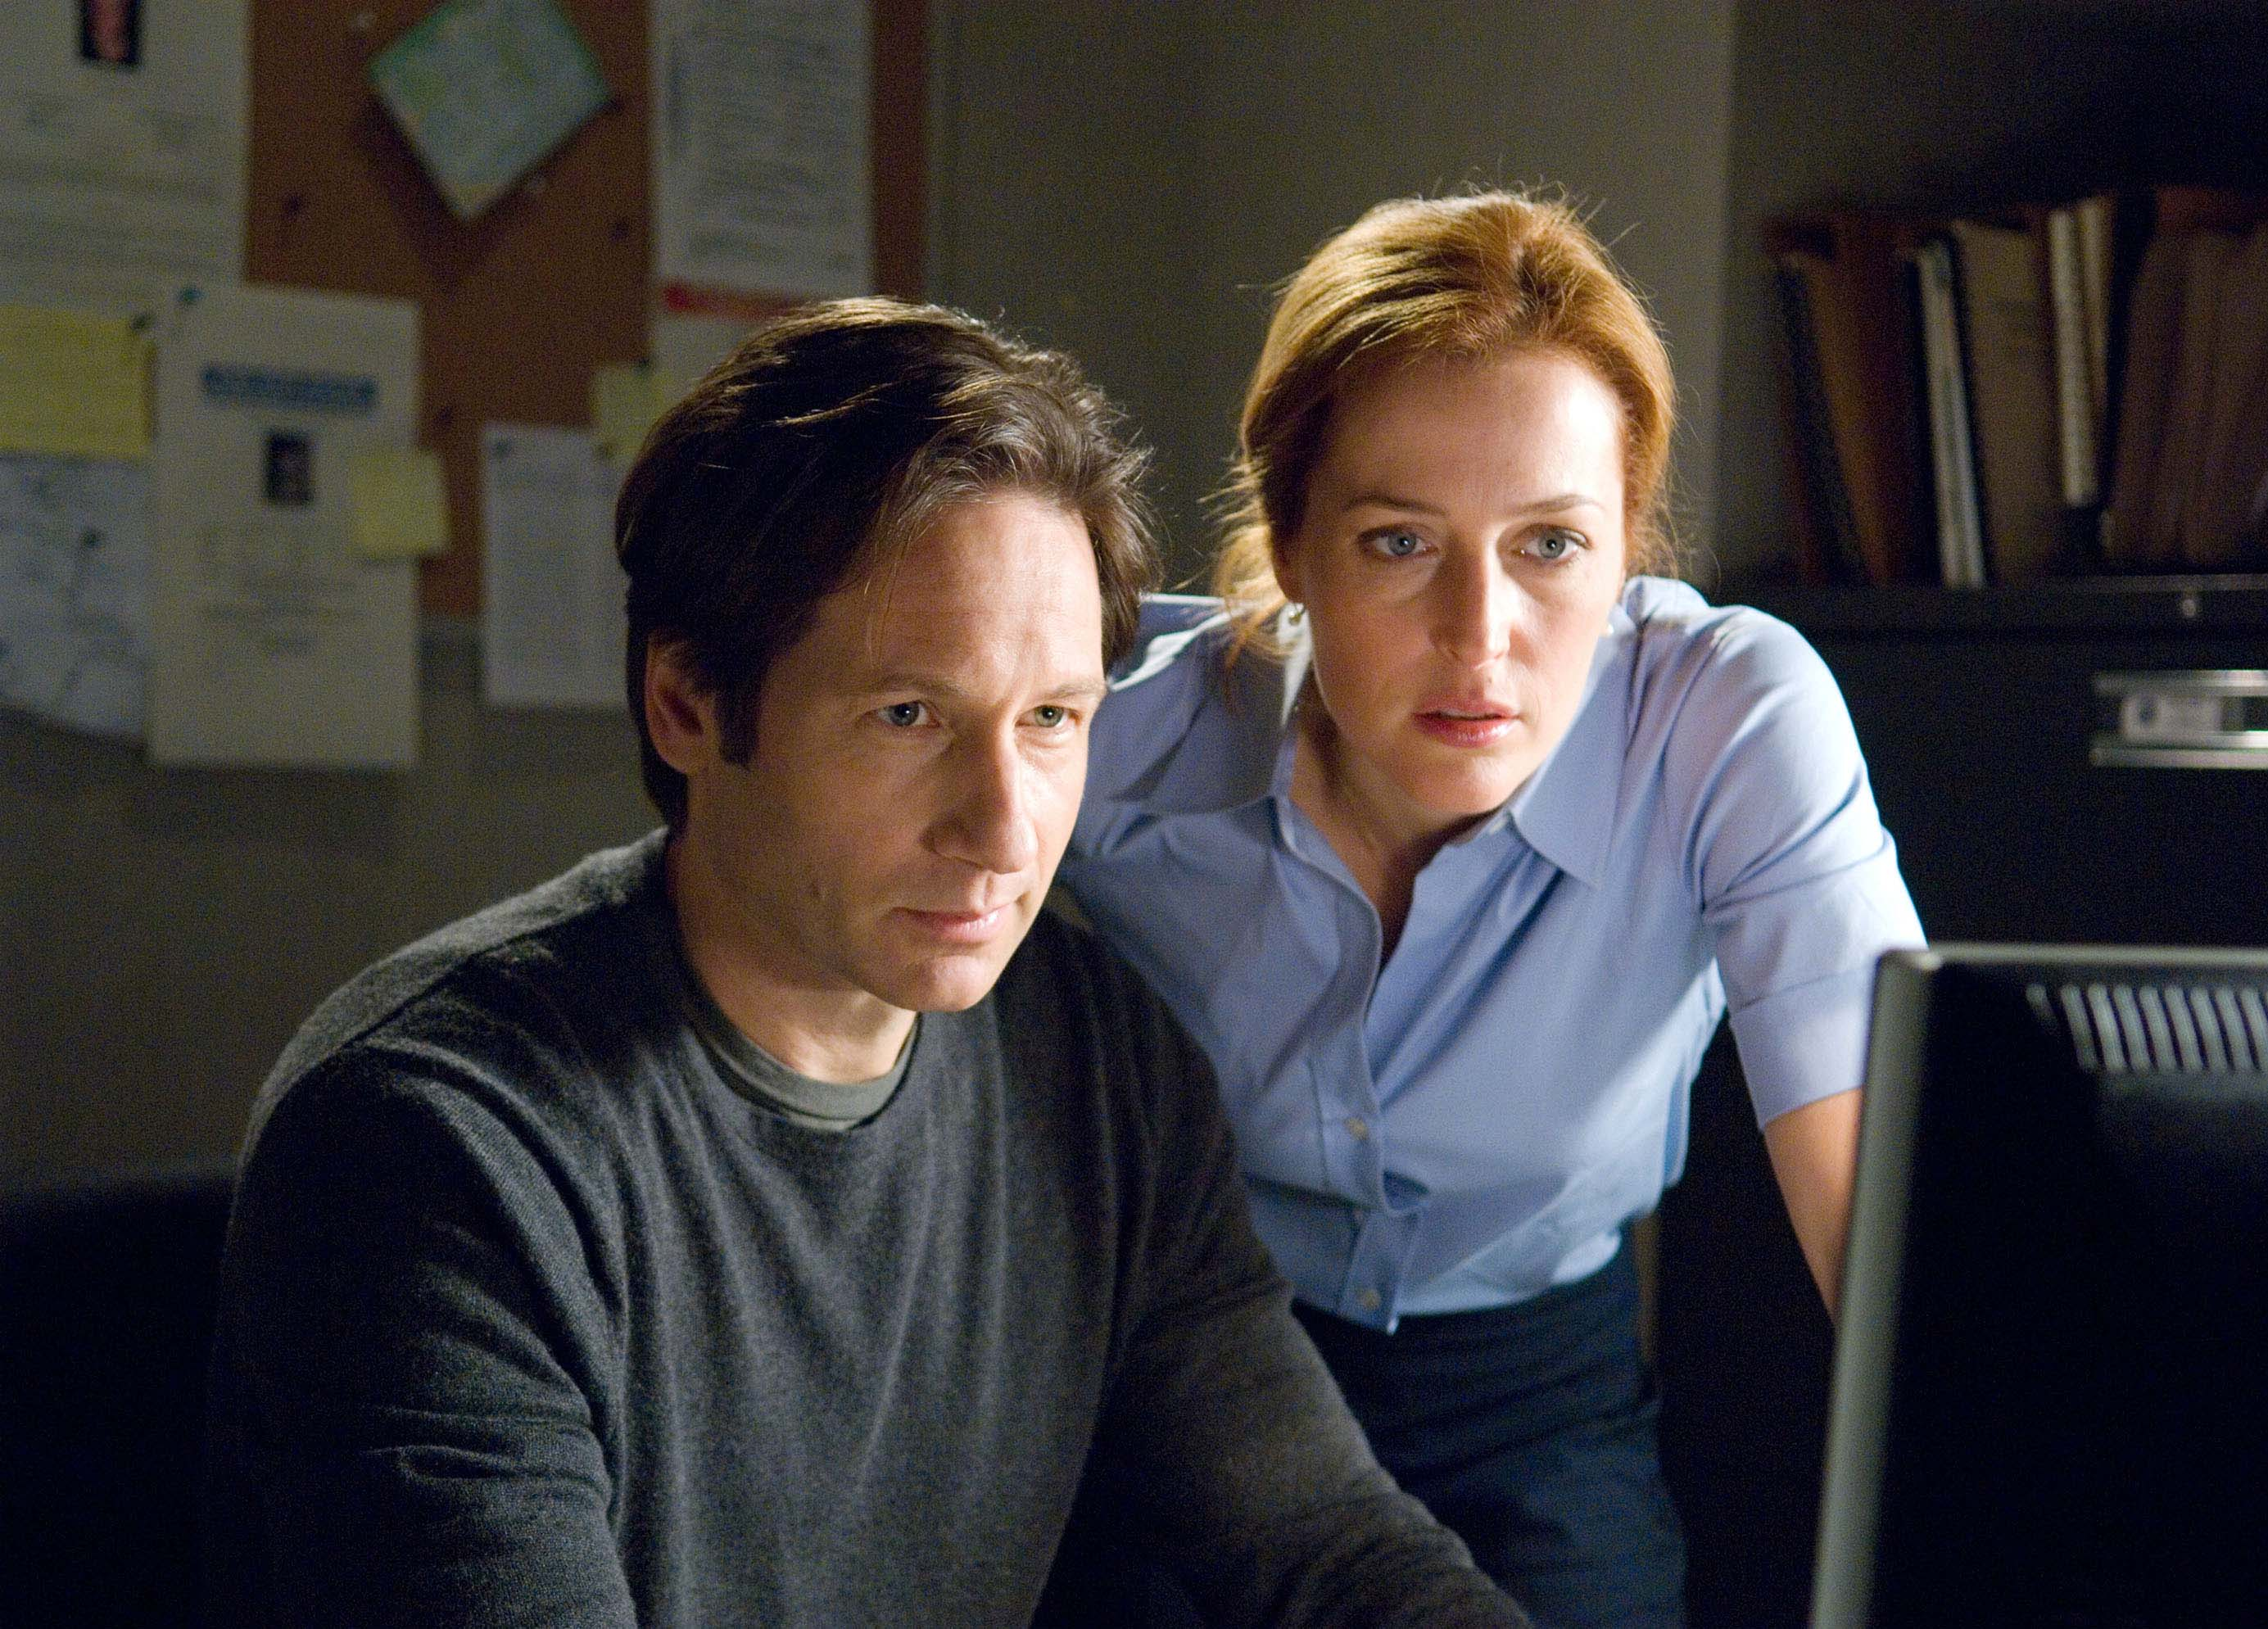 David Duchovny (L) and Gillian Anderson (R) are shown in a scene from,  The X-Files: I Want to Believe.